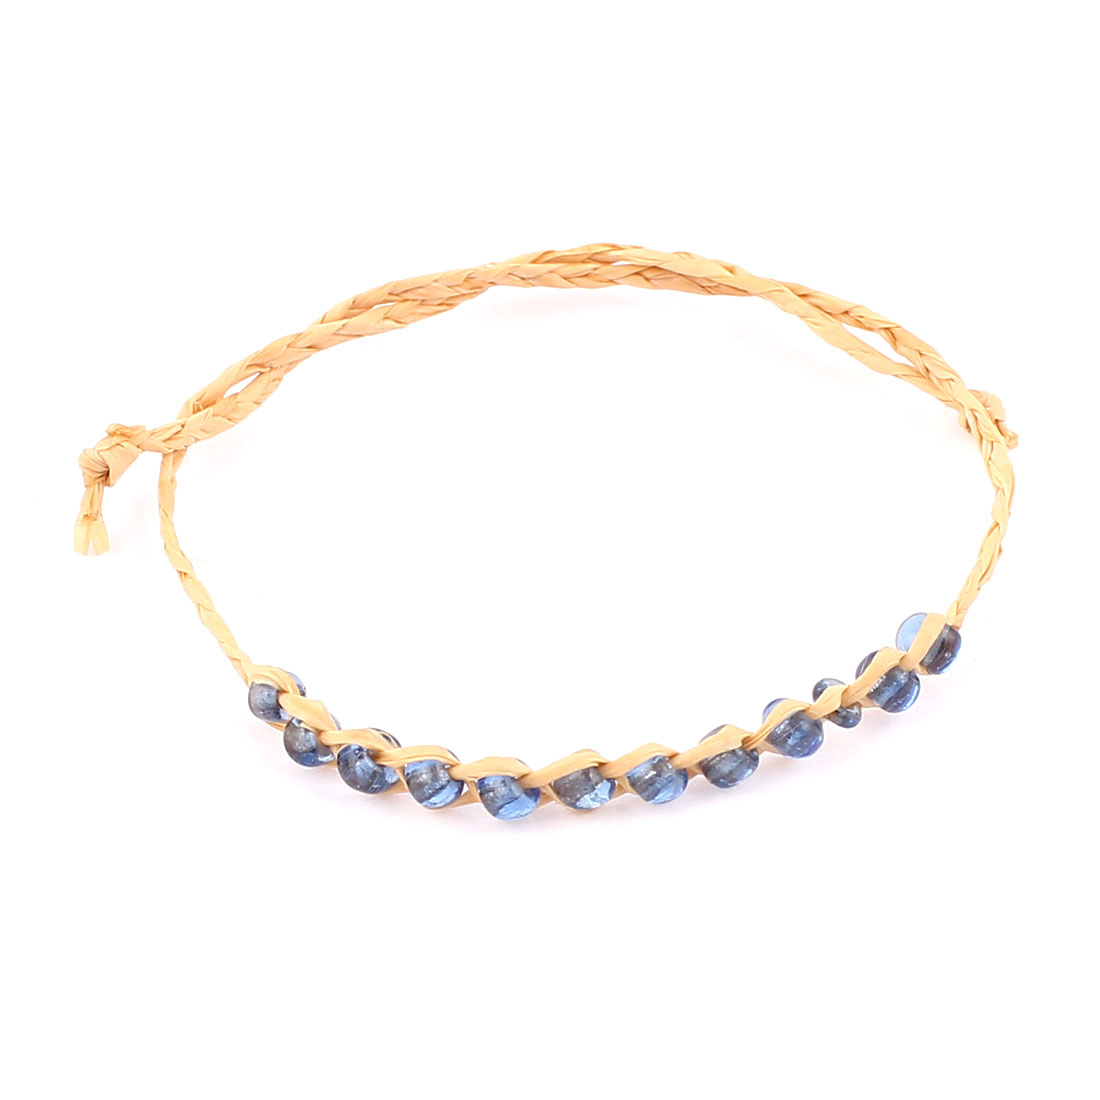 Beige Light Blue Beads Decor Self Tie Straw Bracelet Bangle 5 Pcs